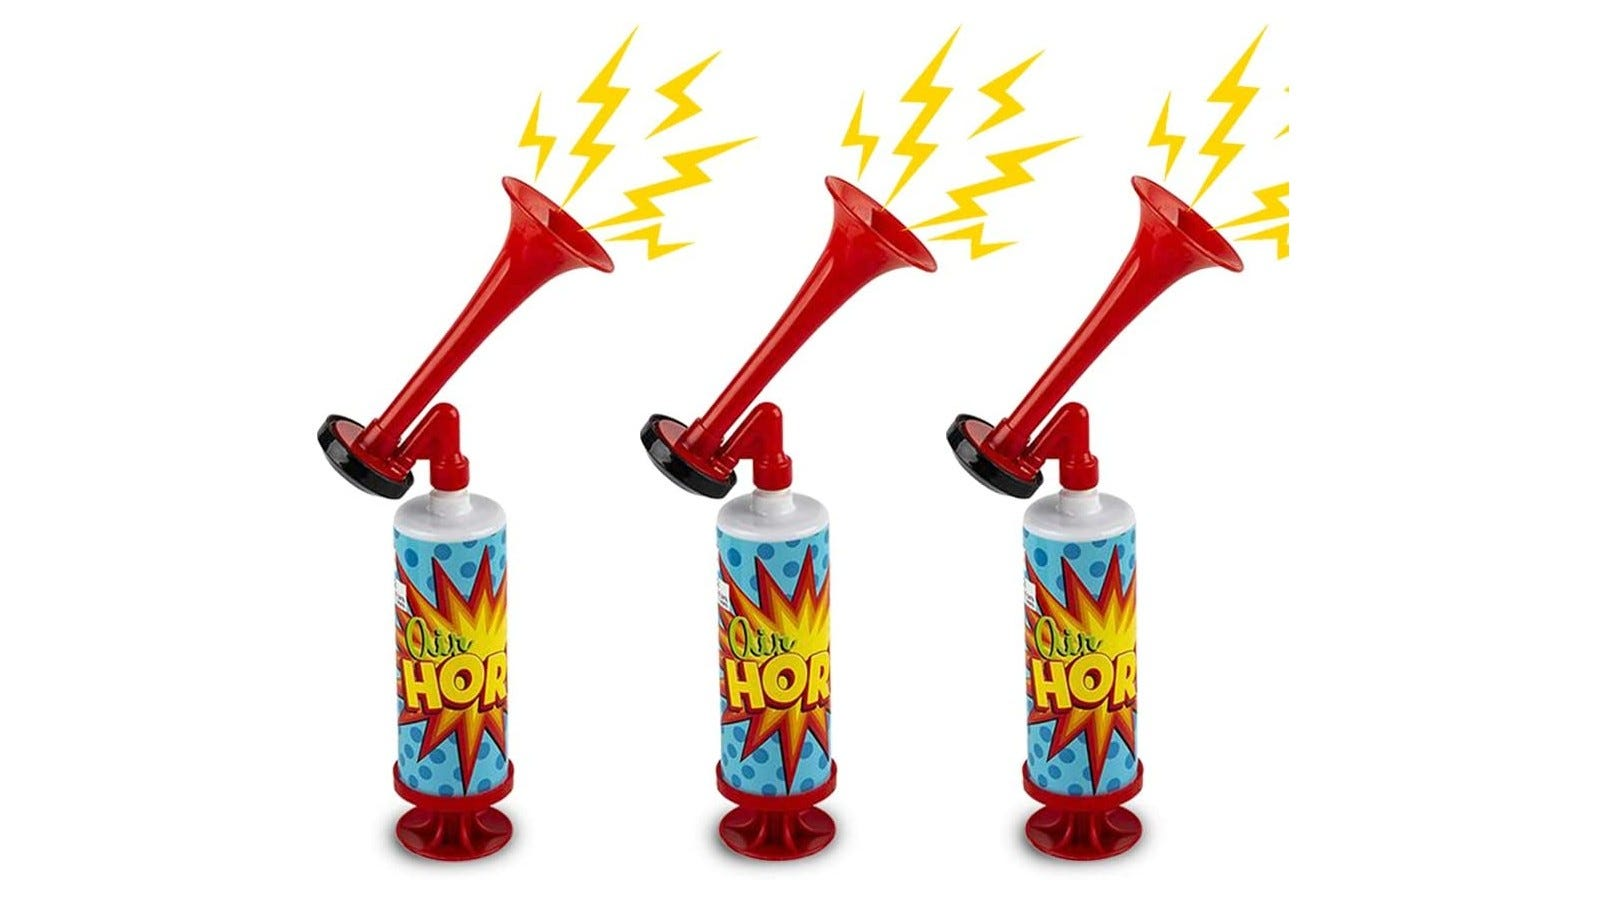 Air horns that are perfect for sporting events